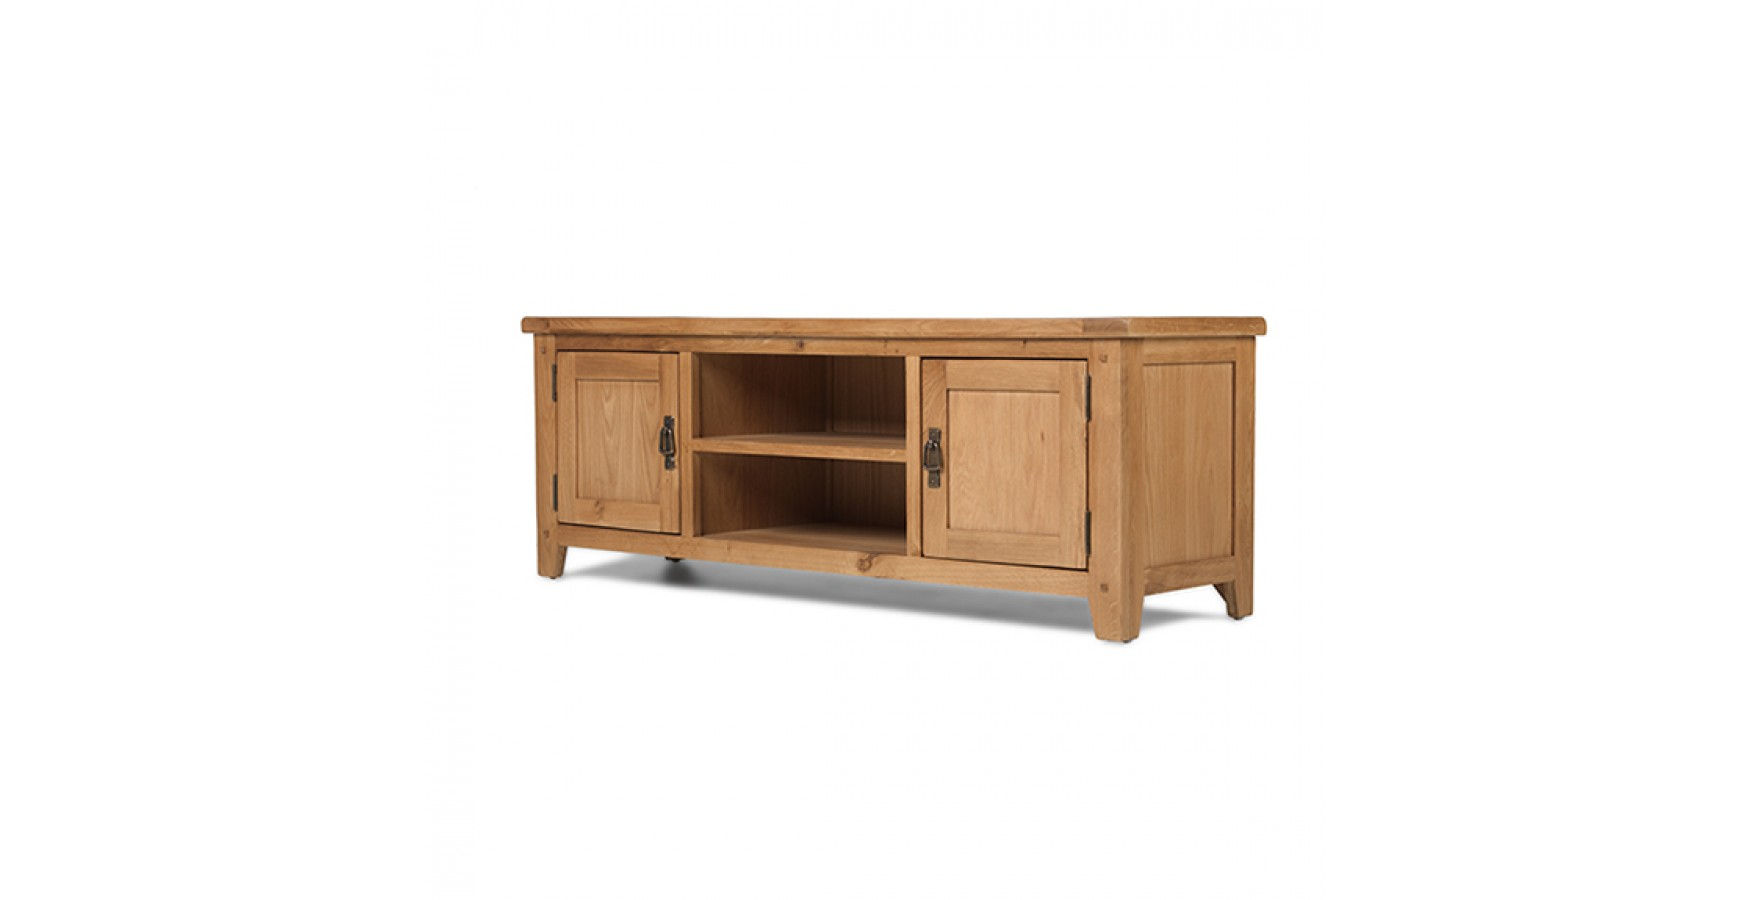 Rustic oak plasma tv stand lifestyle furniture uk Rustic tv stands